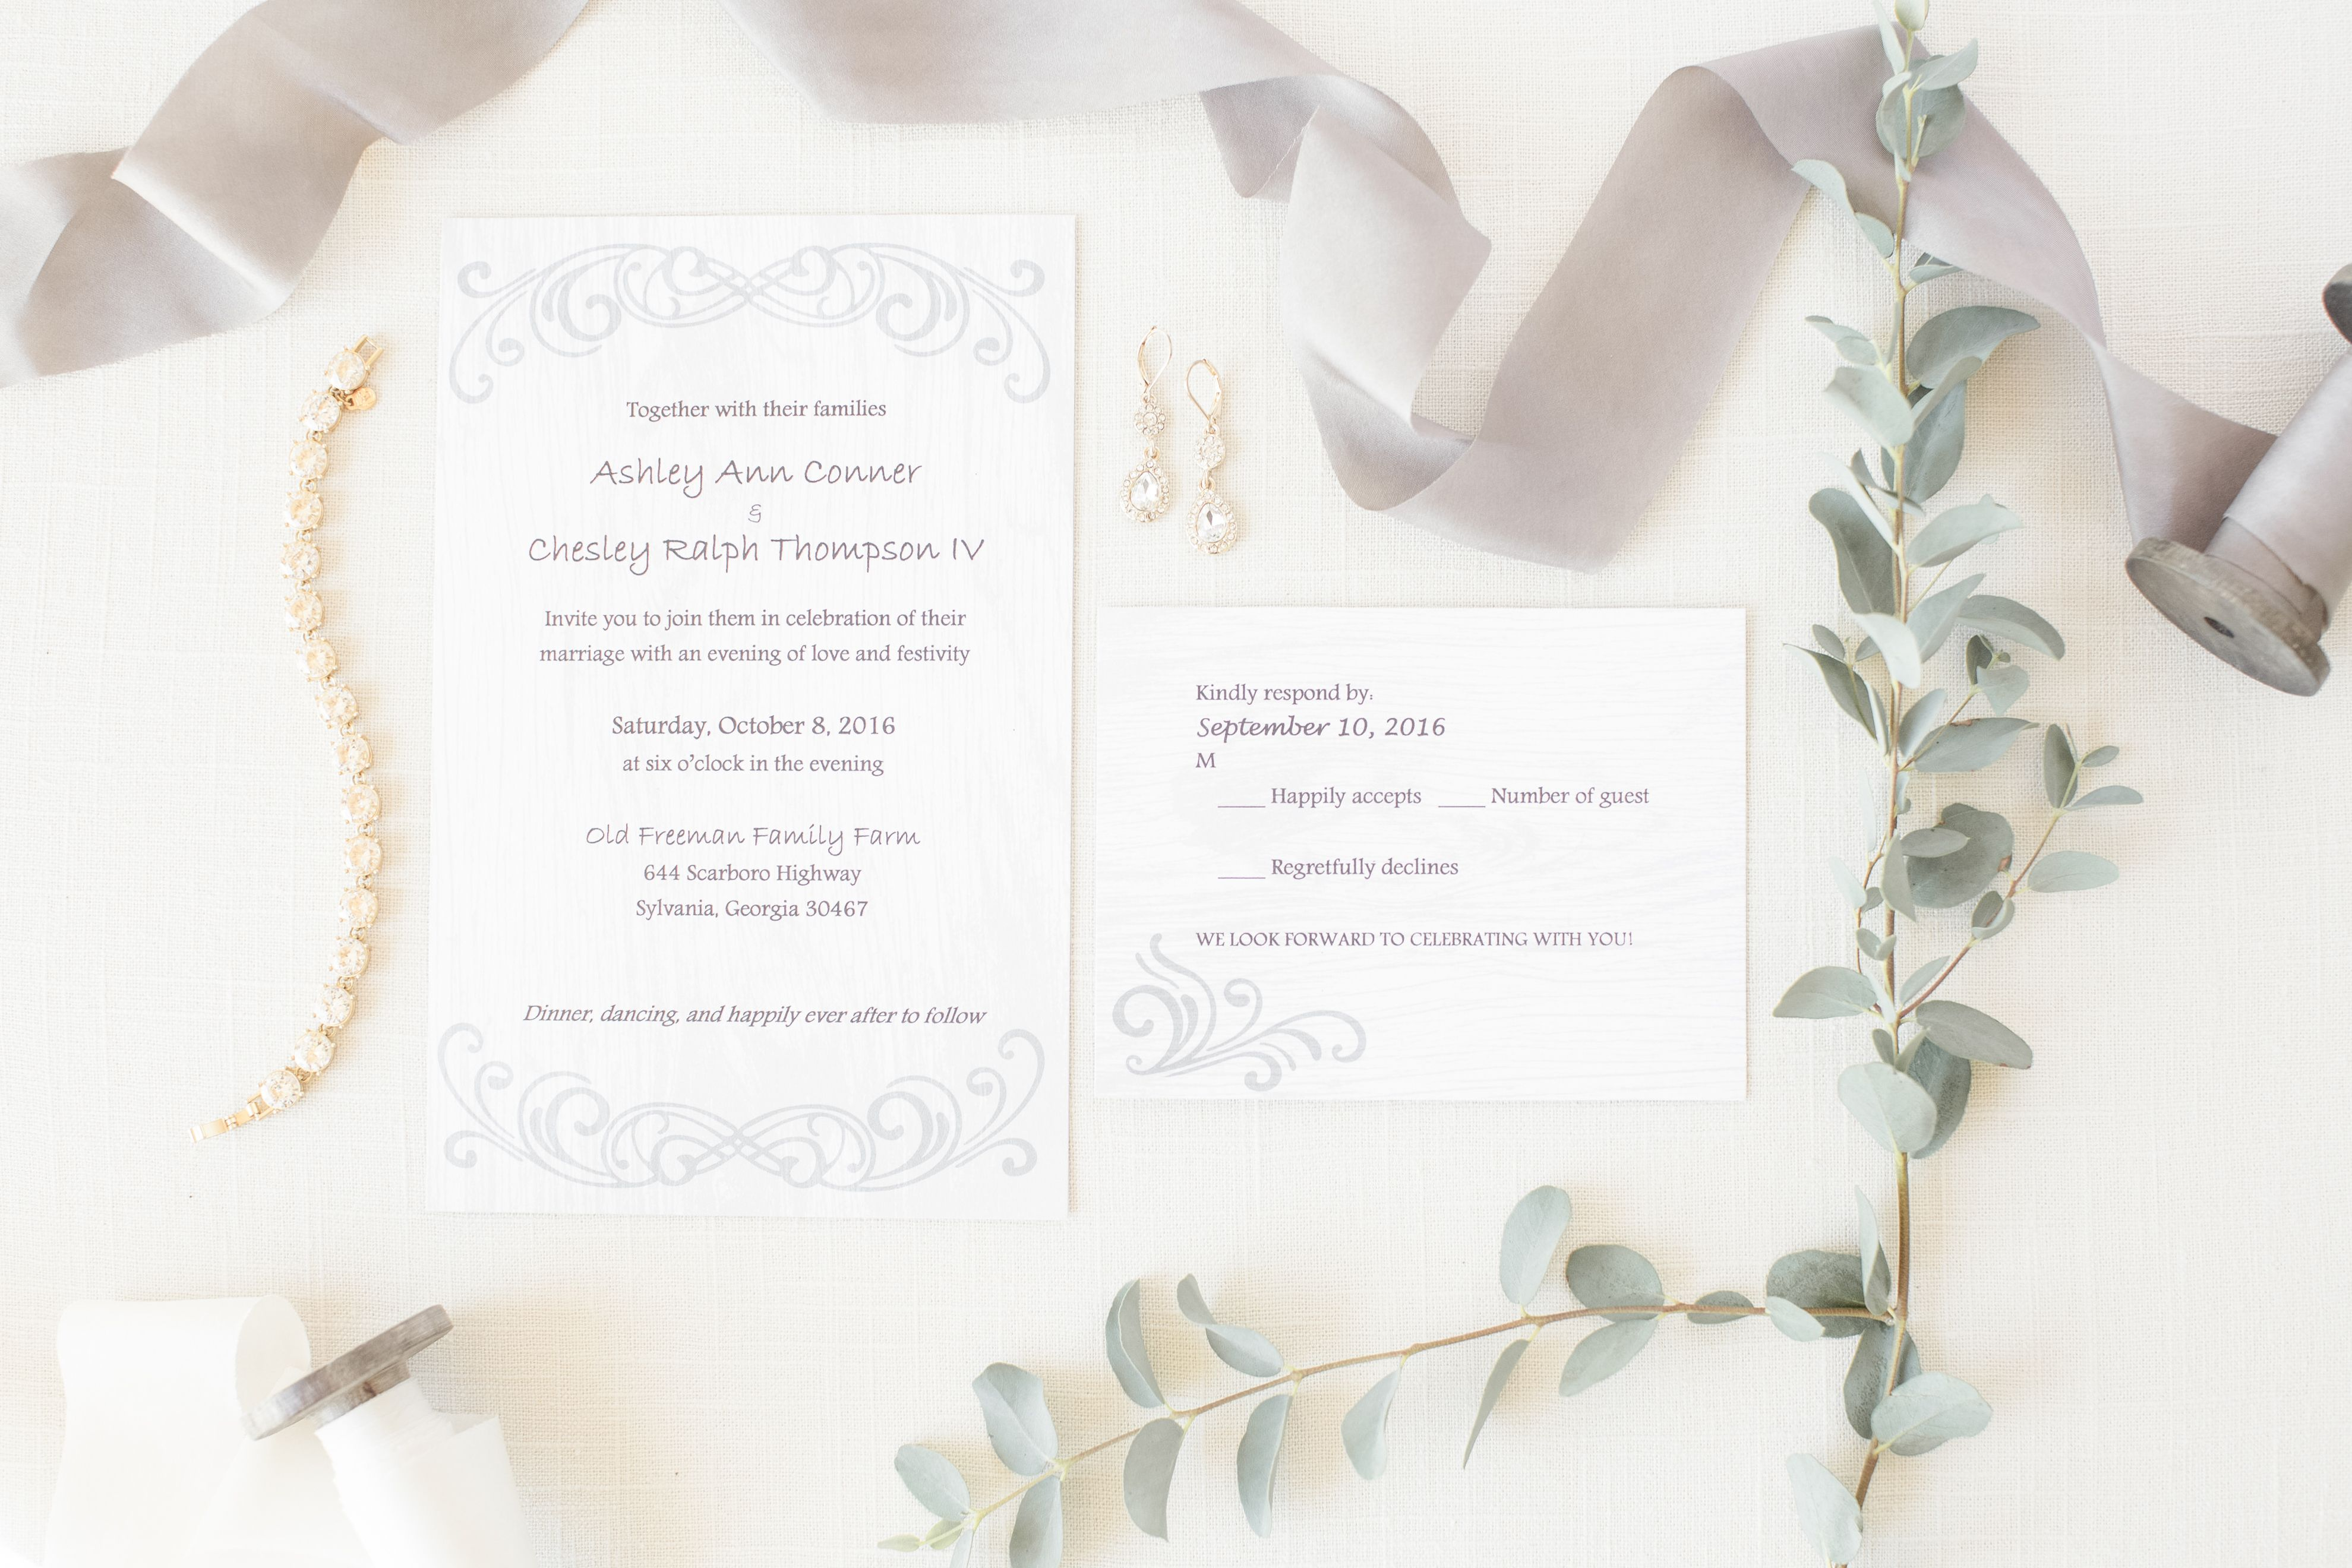 Wedding Invitations | Savannah, GA | Fine Art Wedding Photographer ...